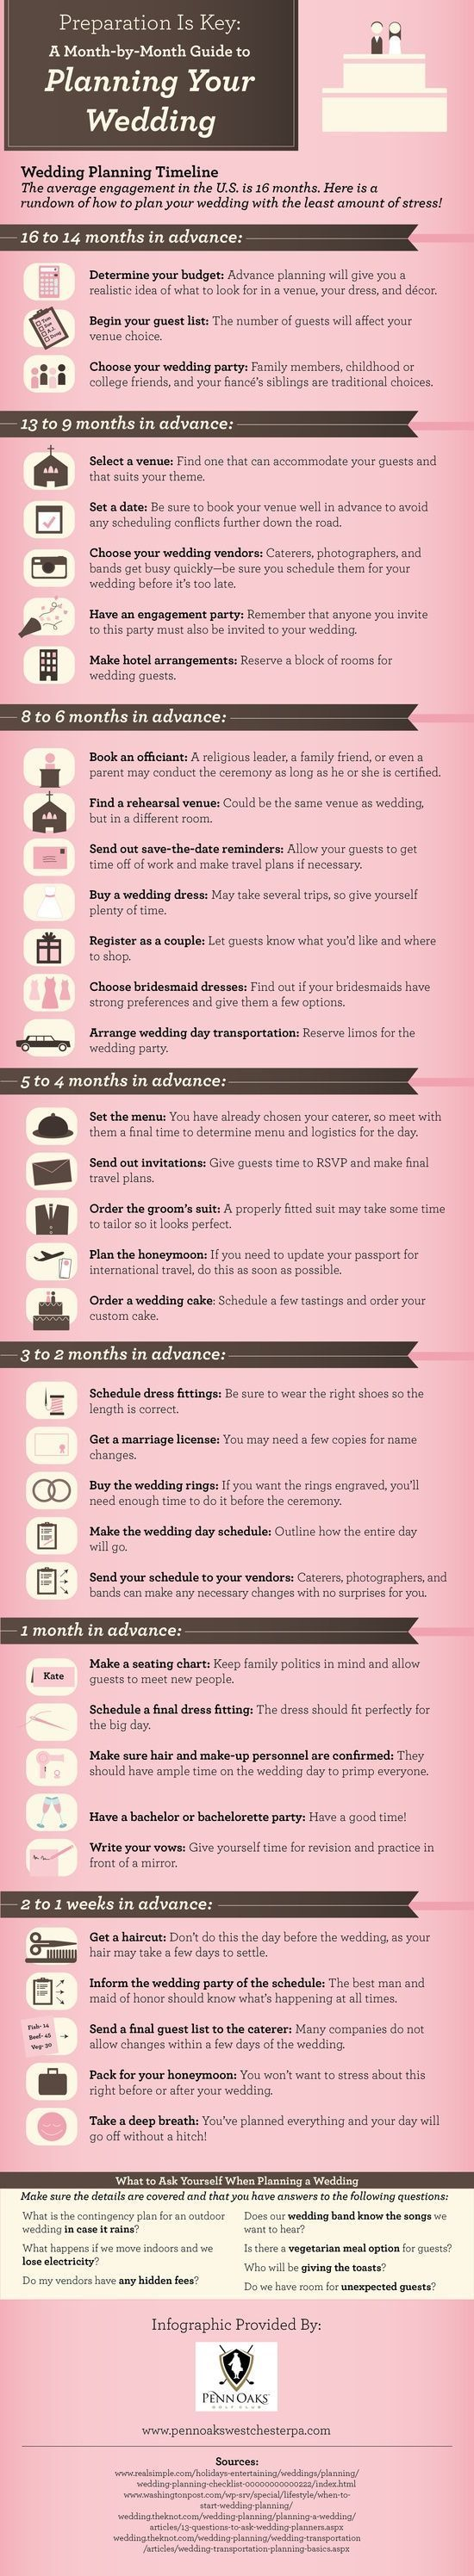 Wedding Planning Timeline Checklist Http Www Rockmywedding Co Uk Congratulations On Your Engagement Belles Pinterest